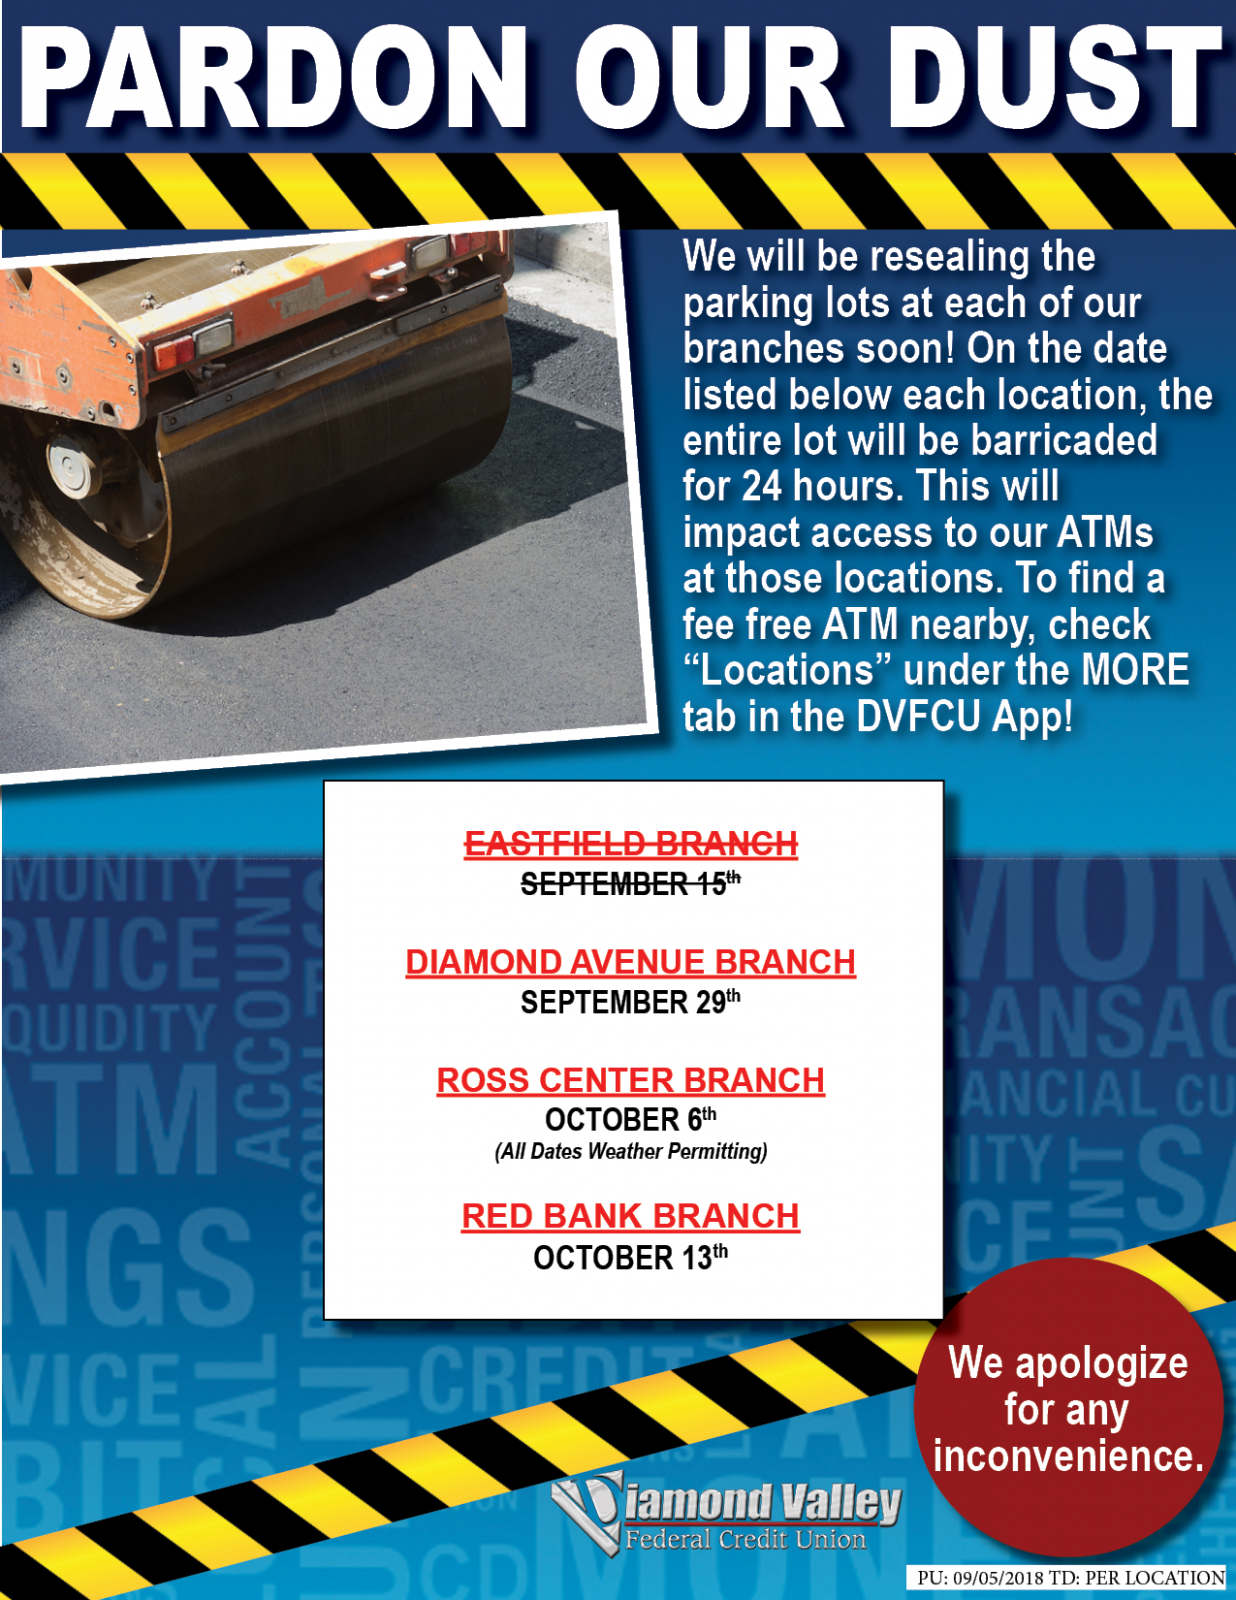 Parking Loat Resealing Taking Place In September and October At All DVFCU Branches